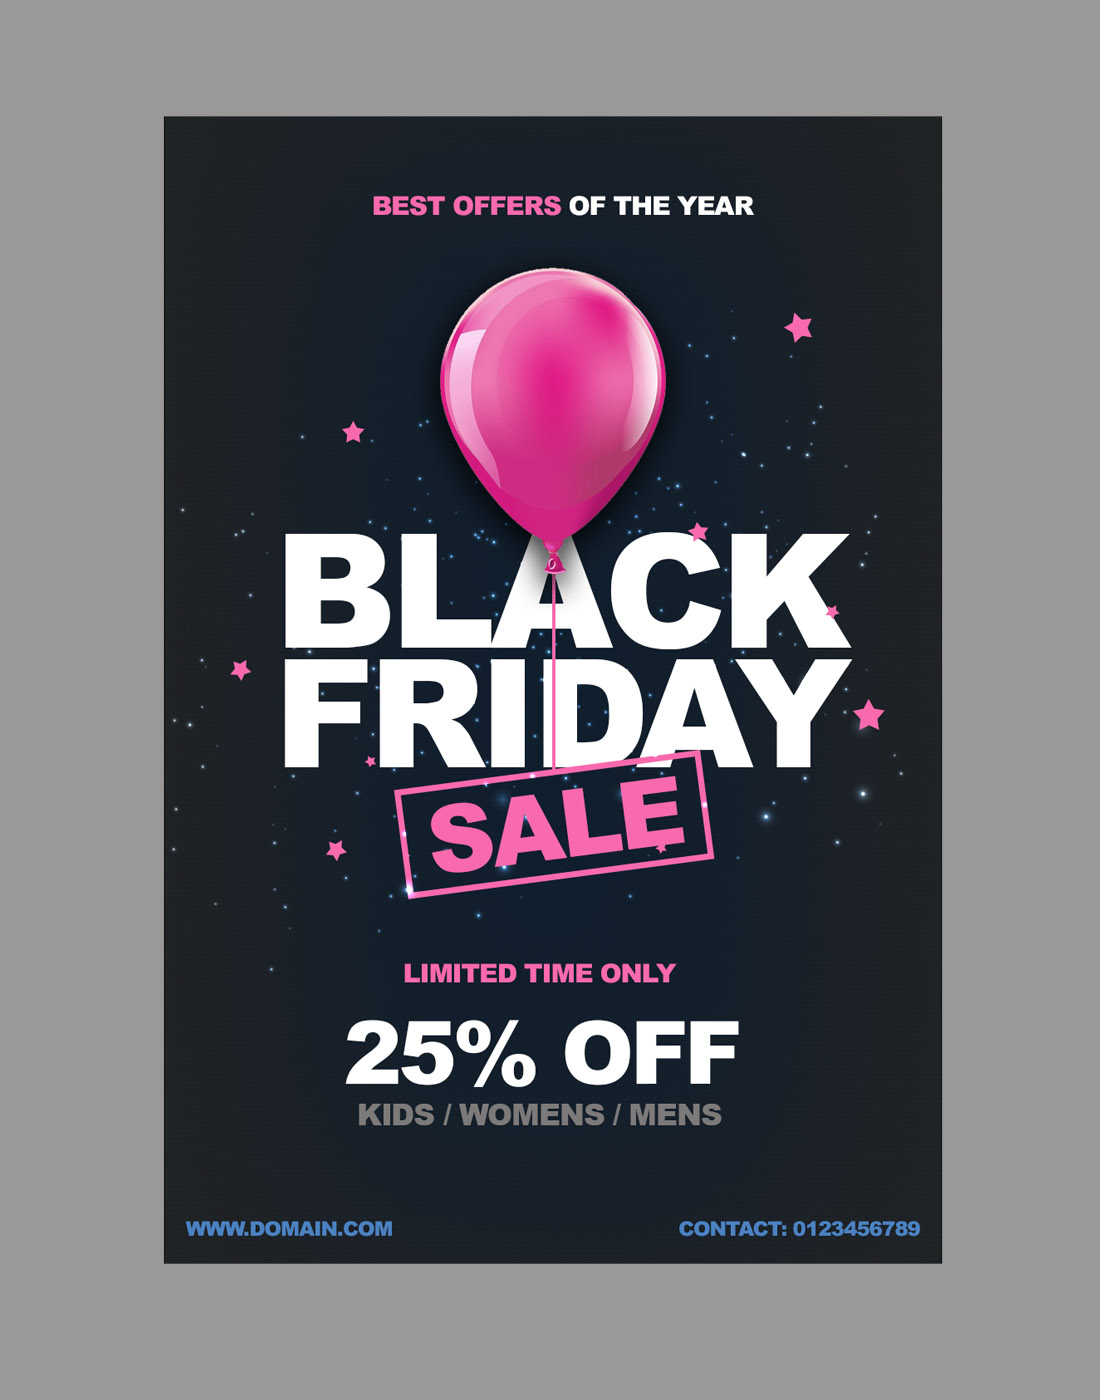 BLACK_FRIDAY_PSD_TEMPLATE